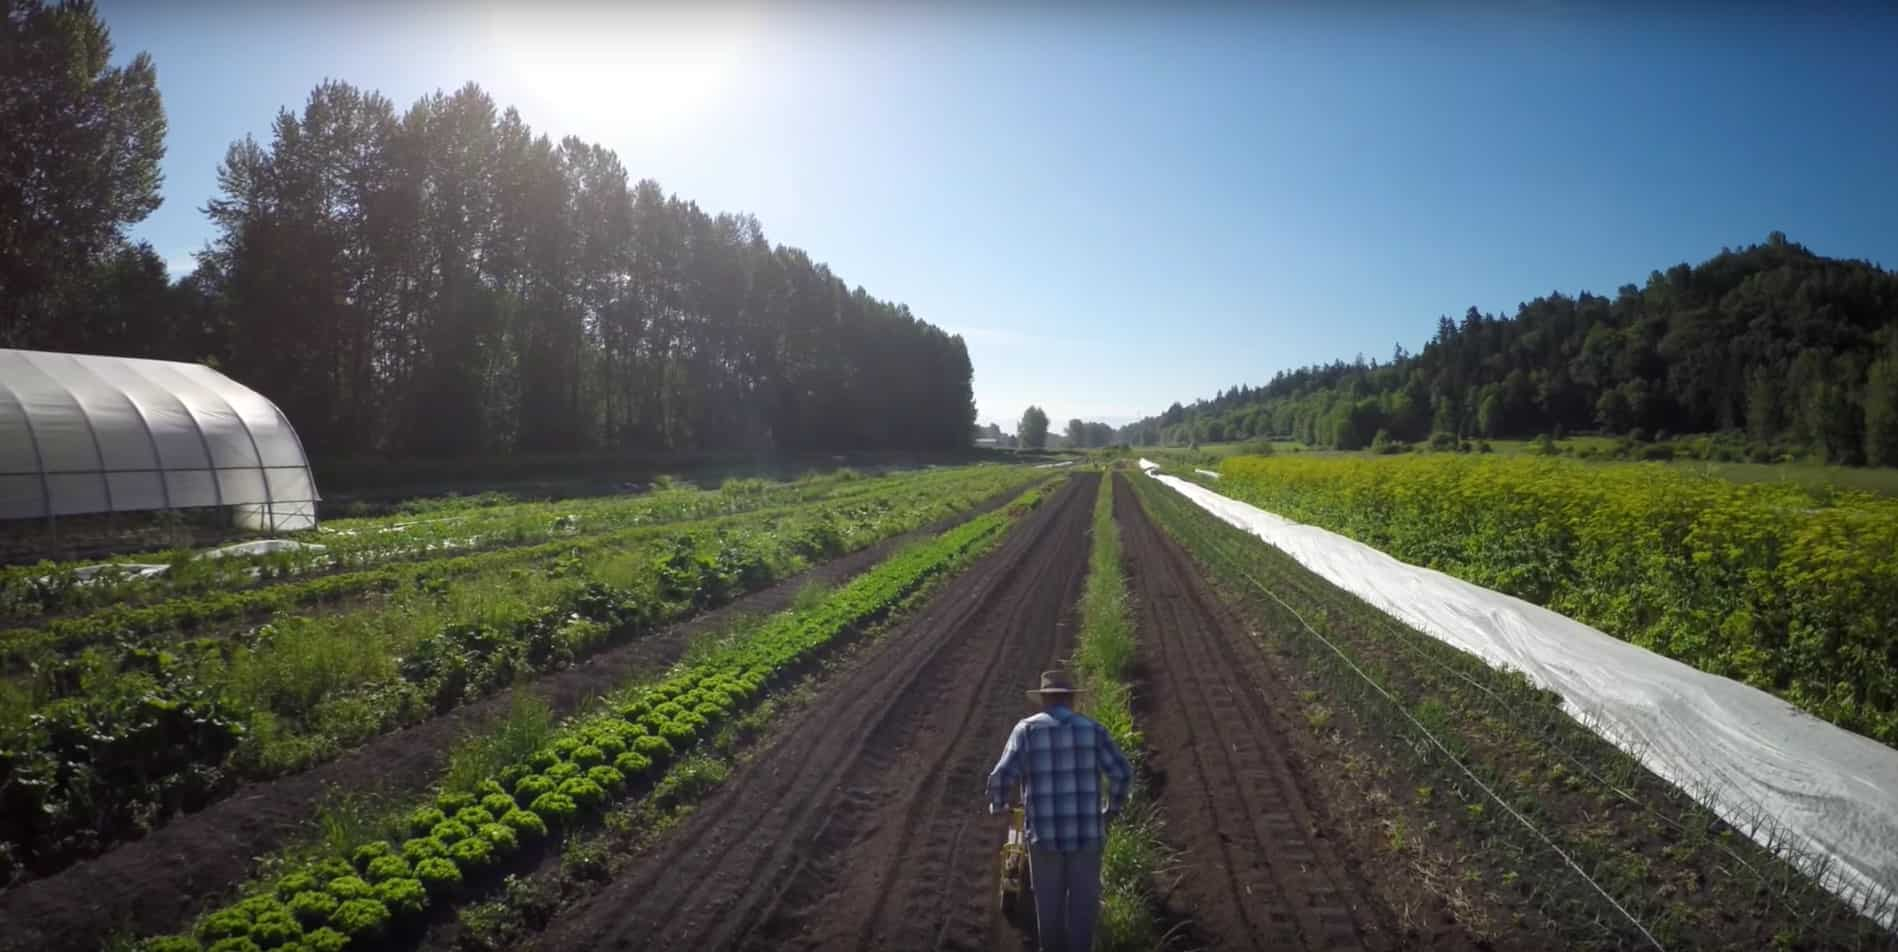 How co-ops can help farmers get started